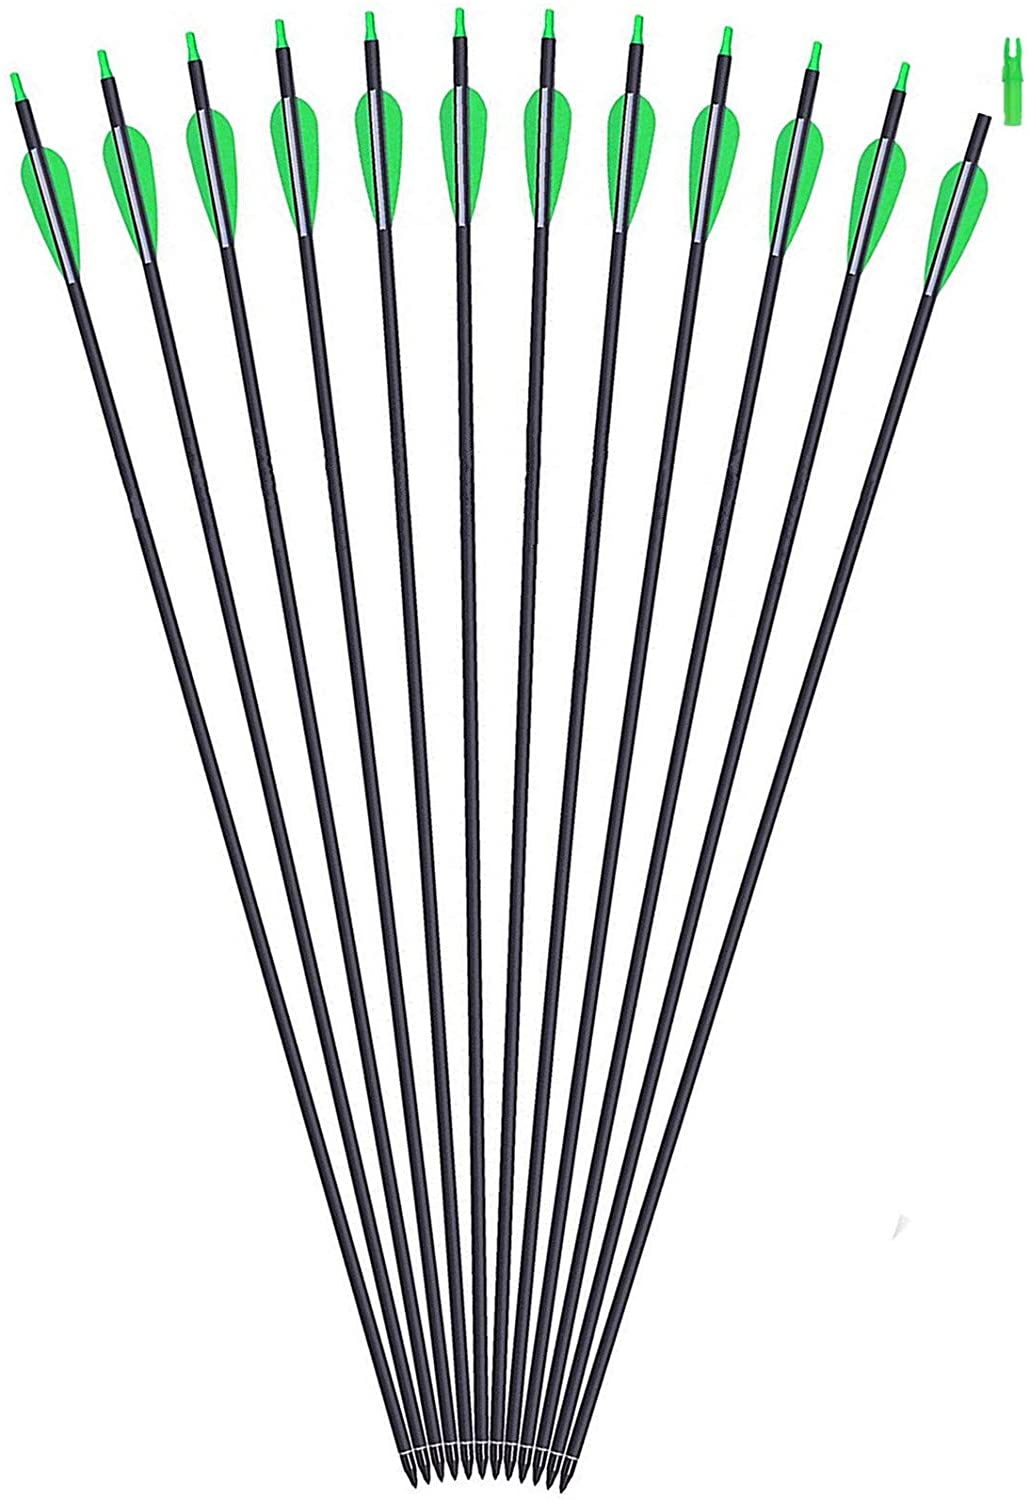 Best Arrows For Compound Bow Reviews 2021 6